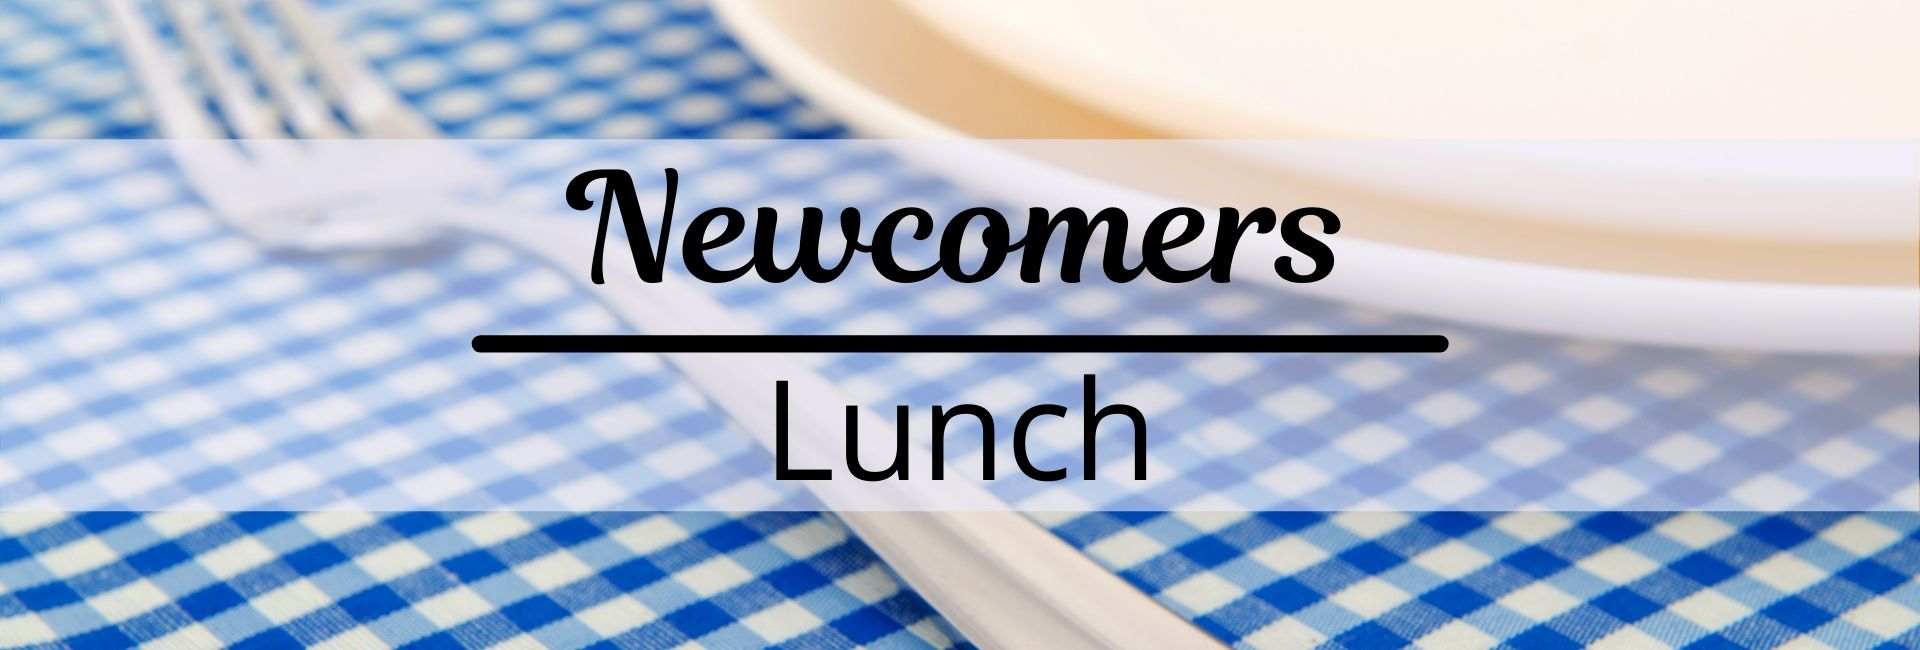 Newcomers Lunch 5 Web